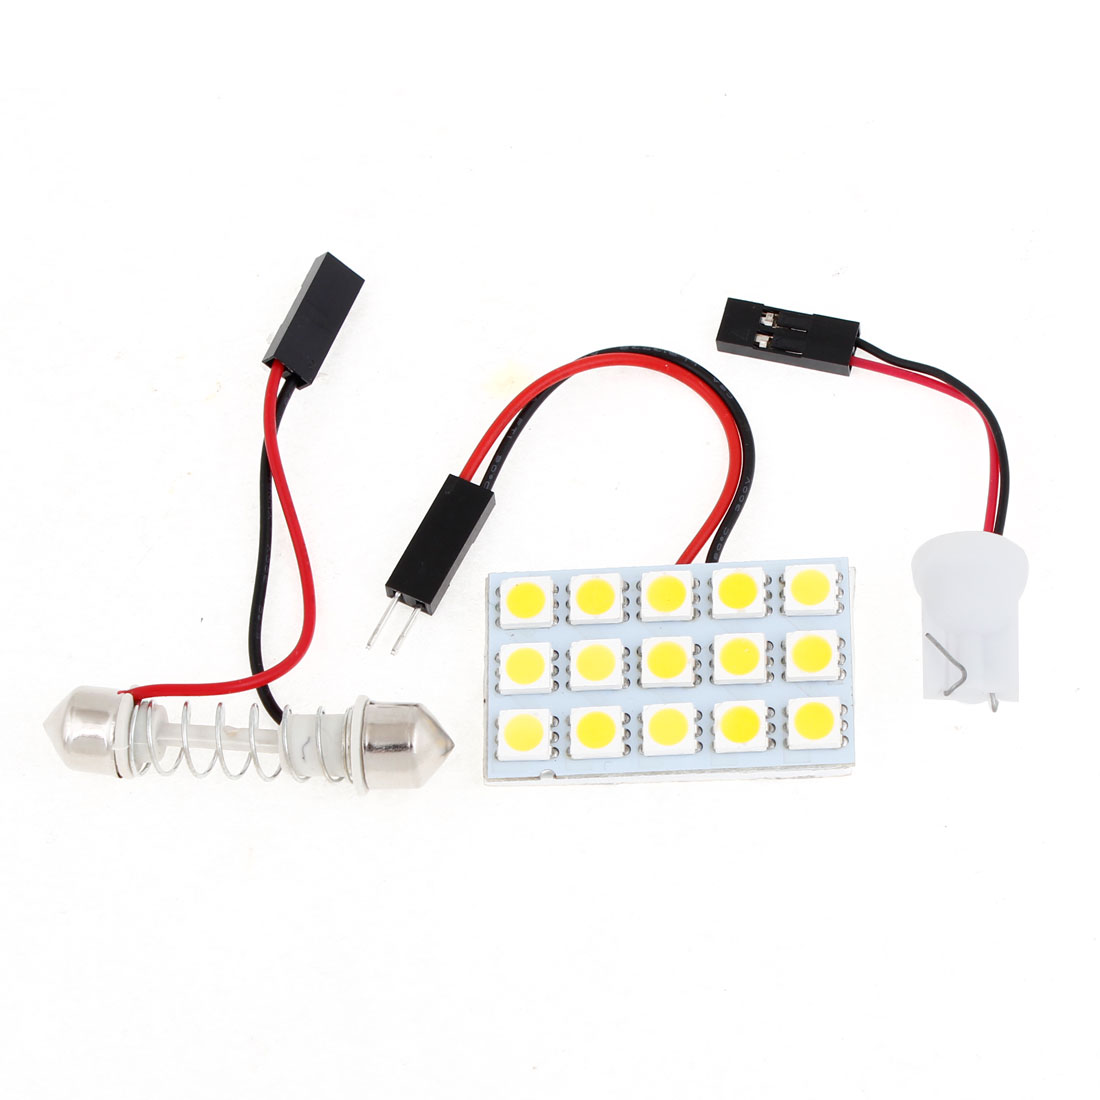 Auto Car 15 Warm White 5050 SMD LED Map Reading Light w T10 Festoon Adapter